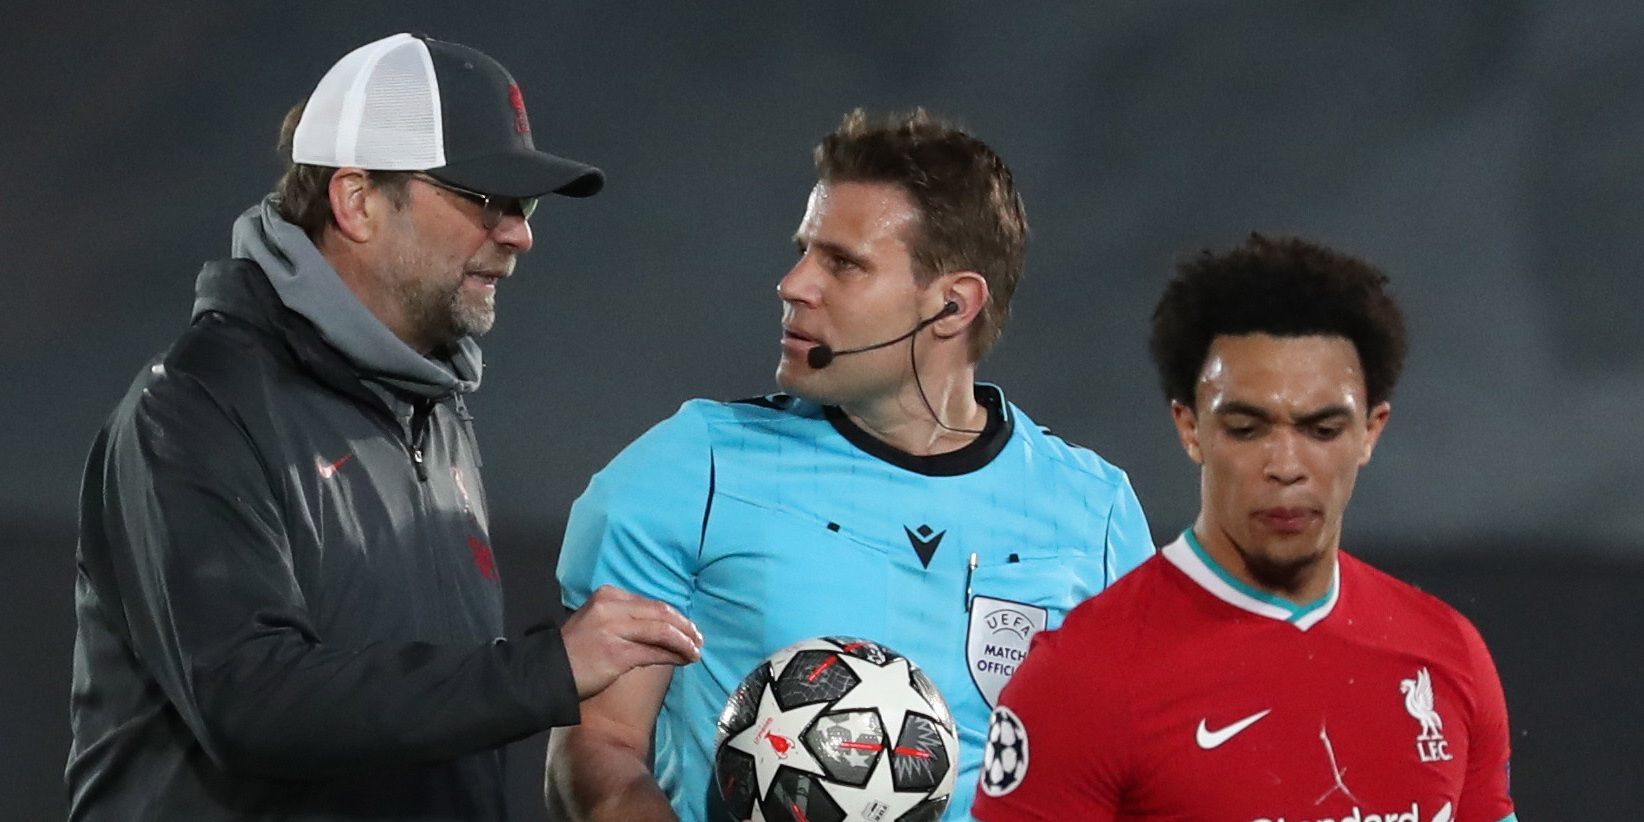 'There is a limit' – German journalist blasts Jurgen Klopp over Felix Brych comments after Madrid defeat